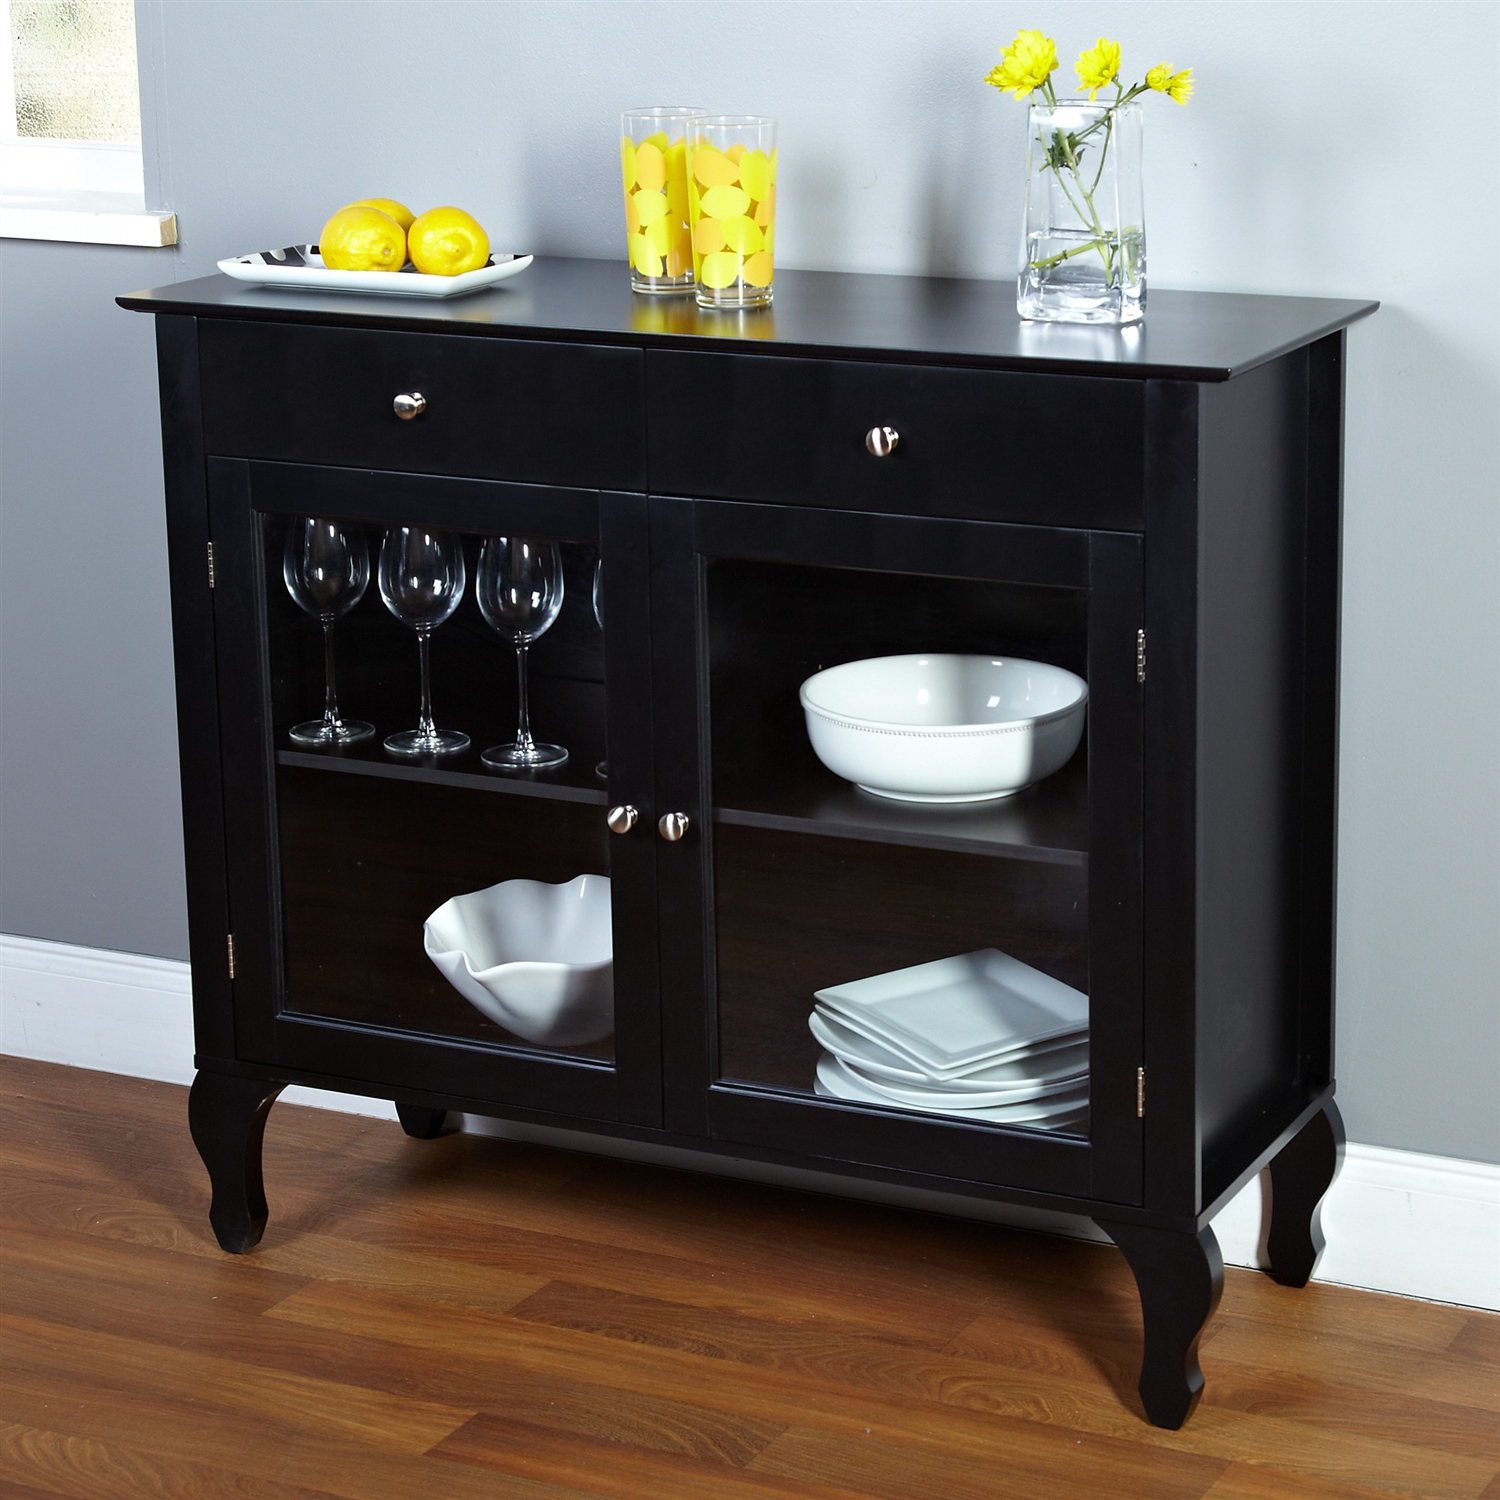 High Quality Black Dining Room Buffet Sideboard Server Cabinet With Glass Doors